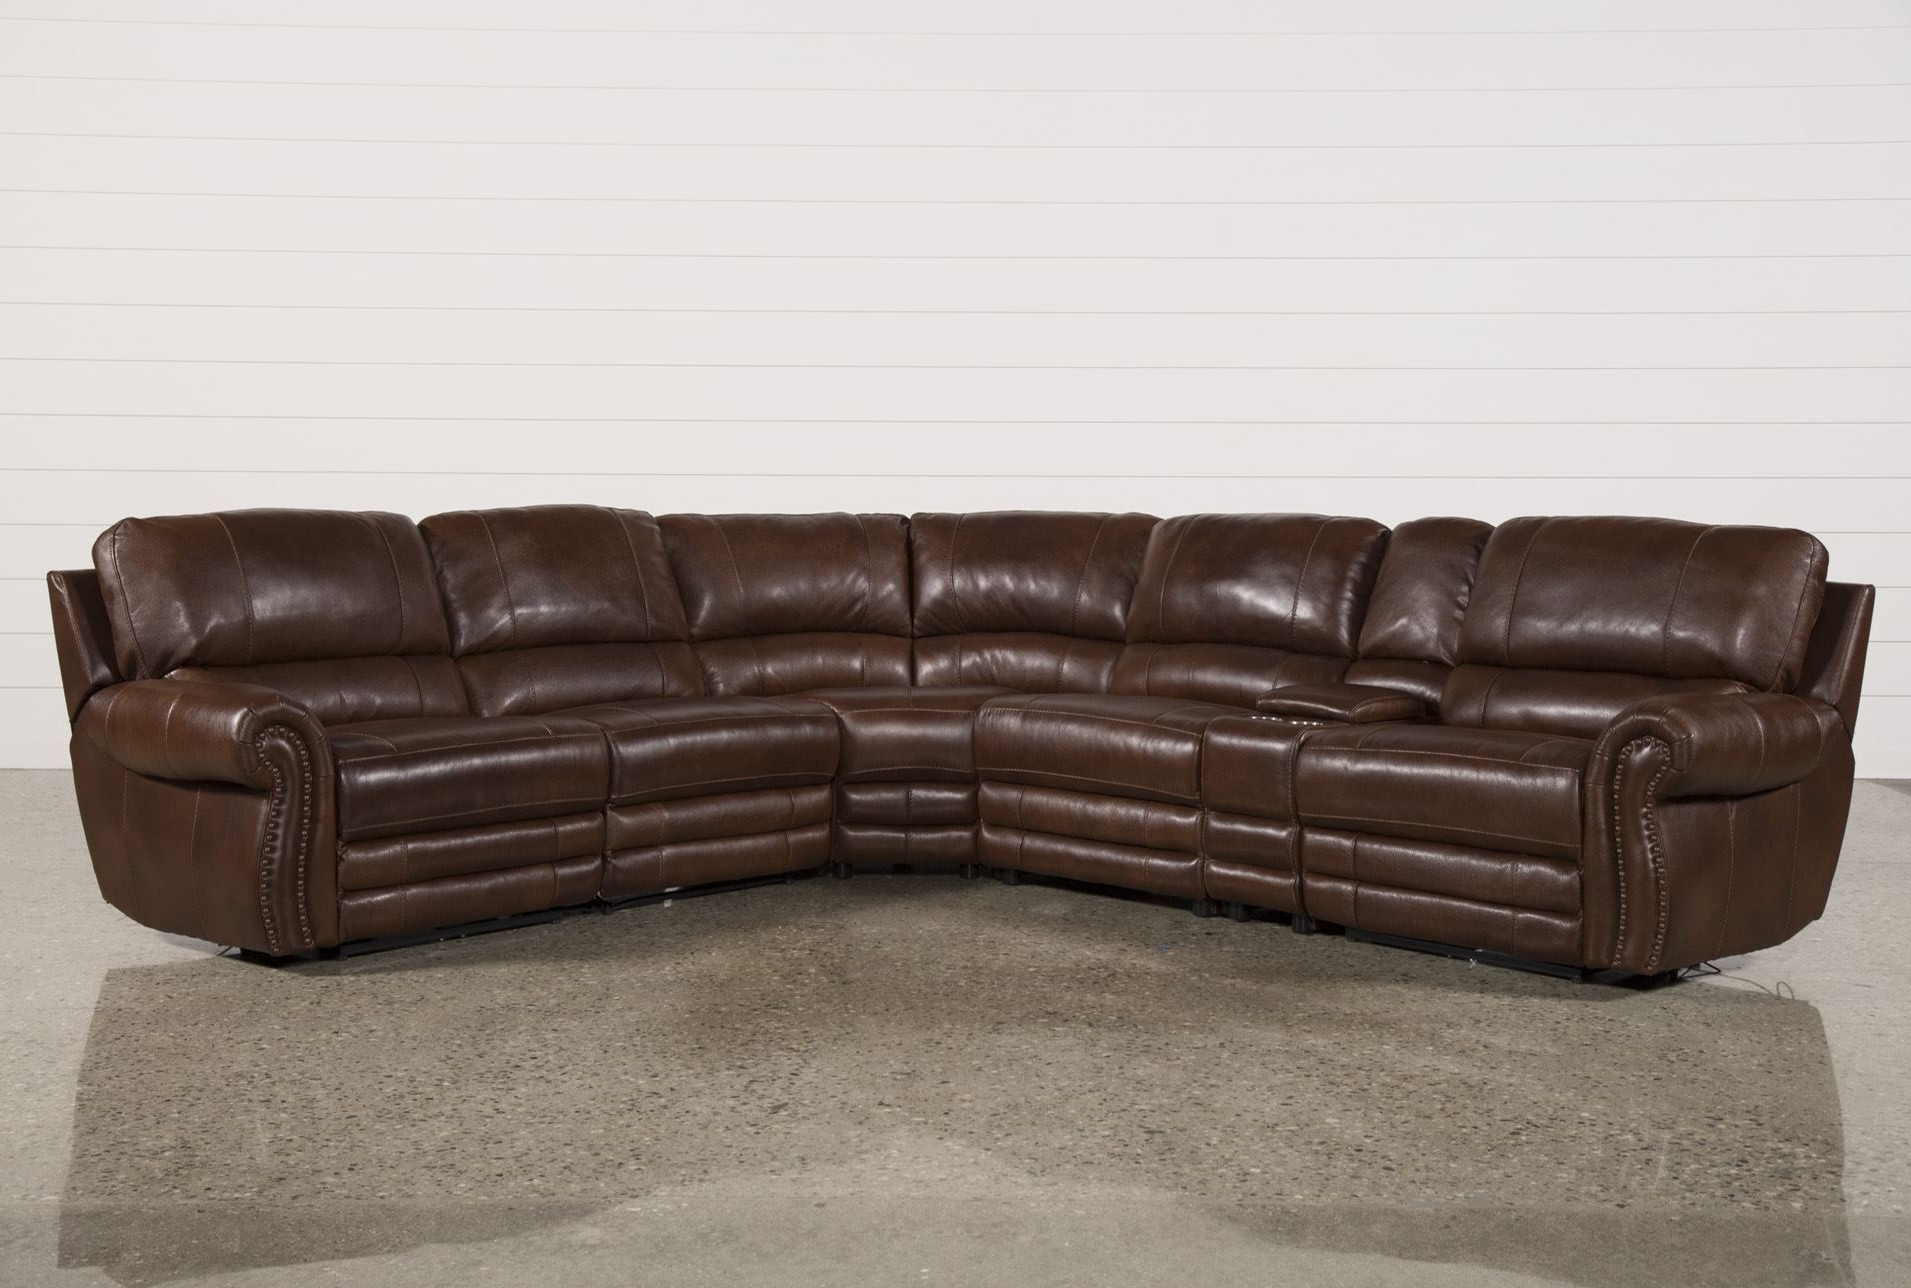 Best And Newest 6 Piece Leather Sectional Sofas Throughout Perfect 6 Piece Leather Sectional Sofa 93 About Remodel With  (View 11 of 20)